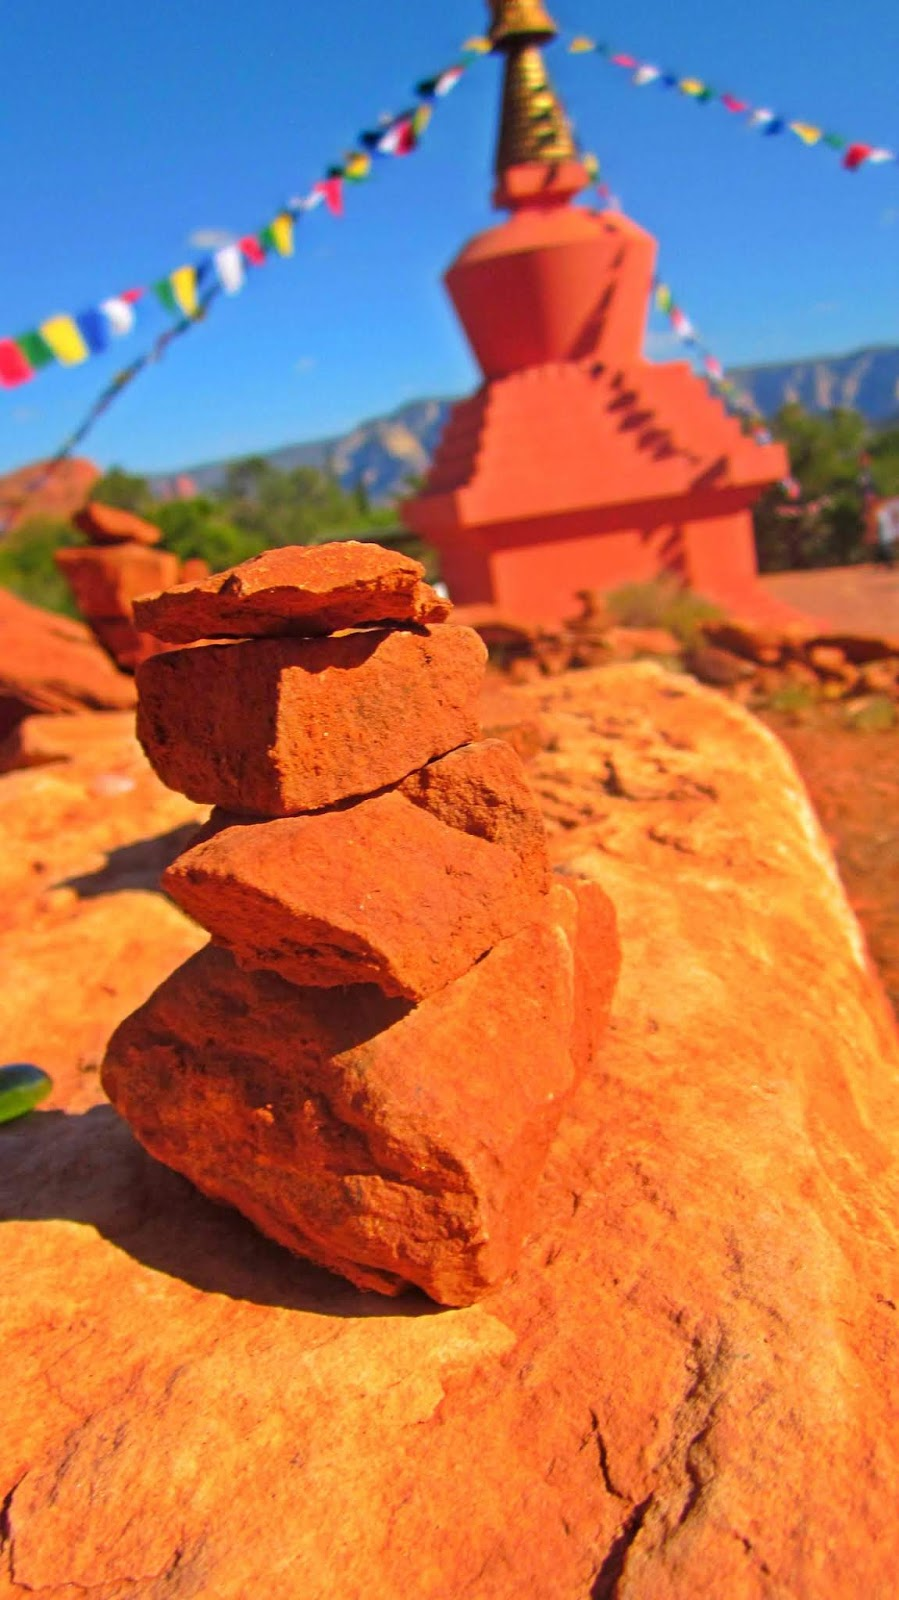 The Stupa of Sedona, Arizona Red Rock Buddhist Temple in the Desert For Prayer and Worship